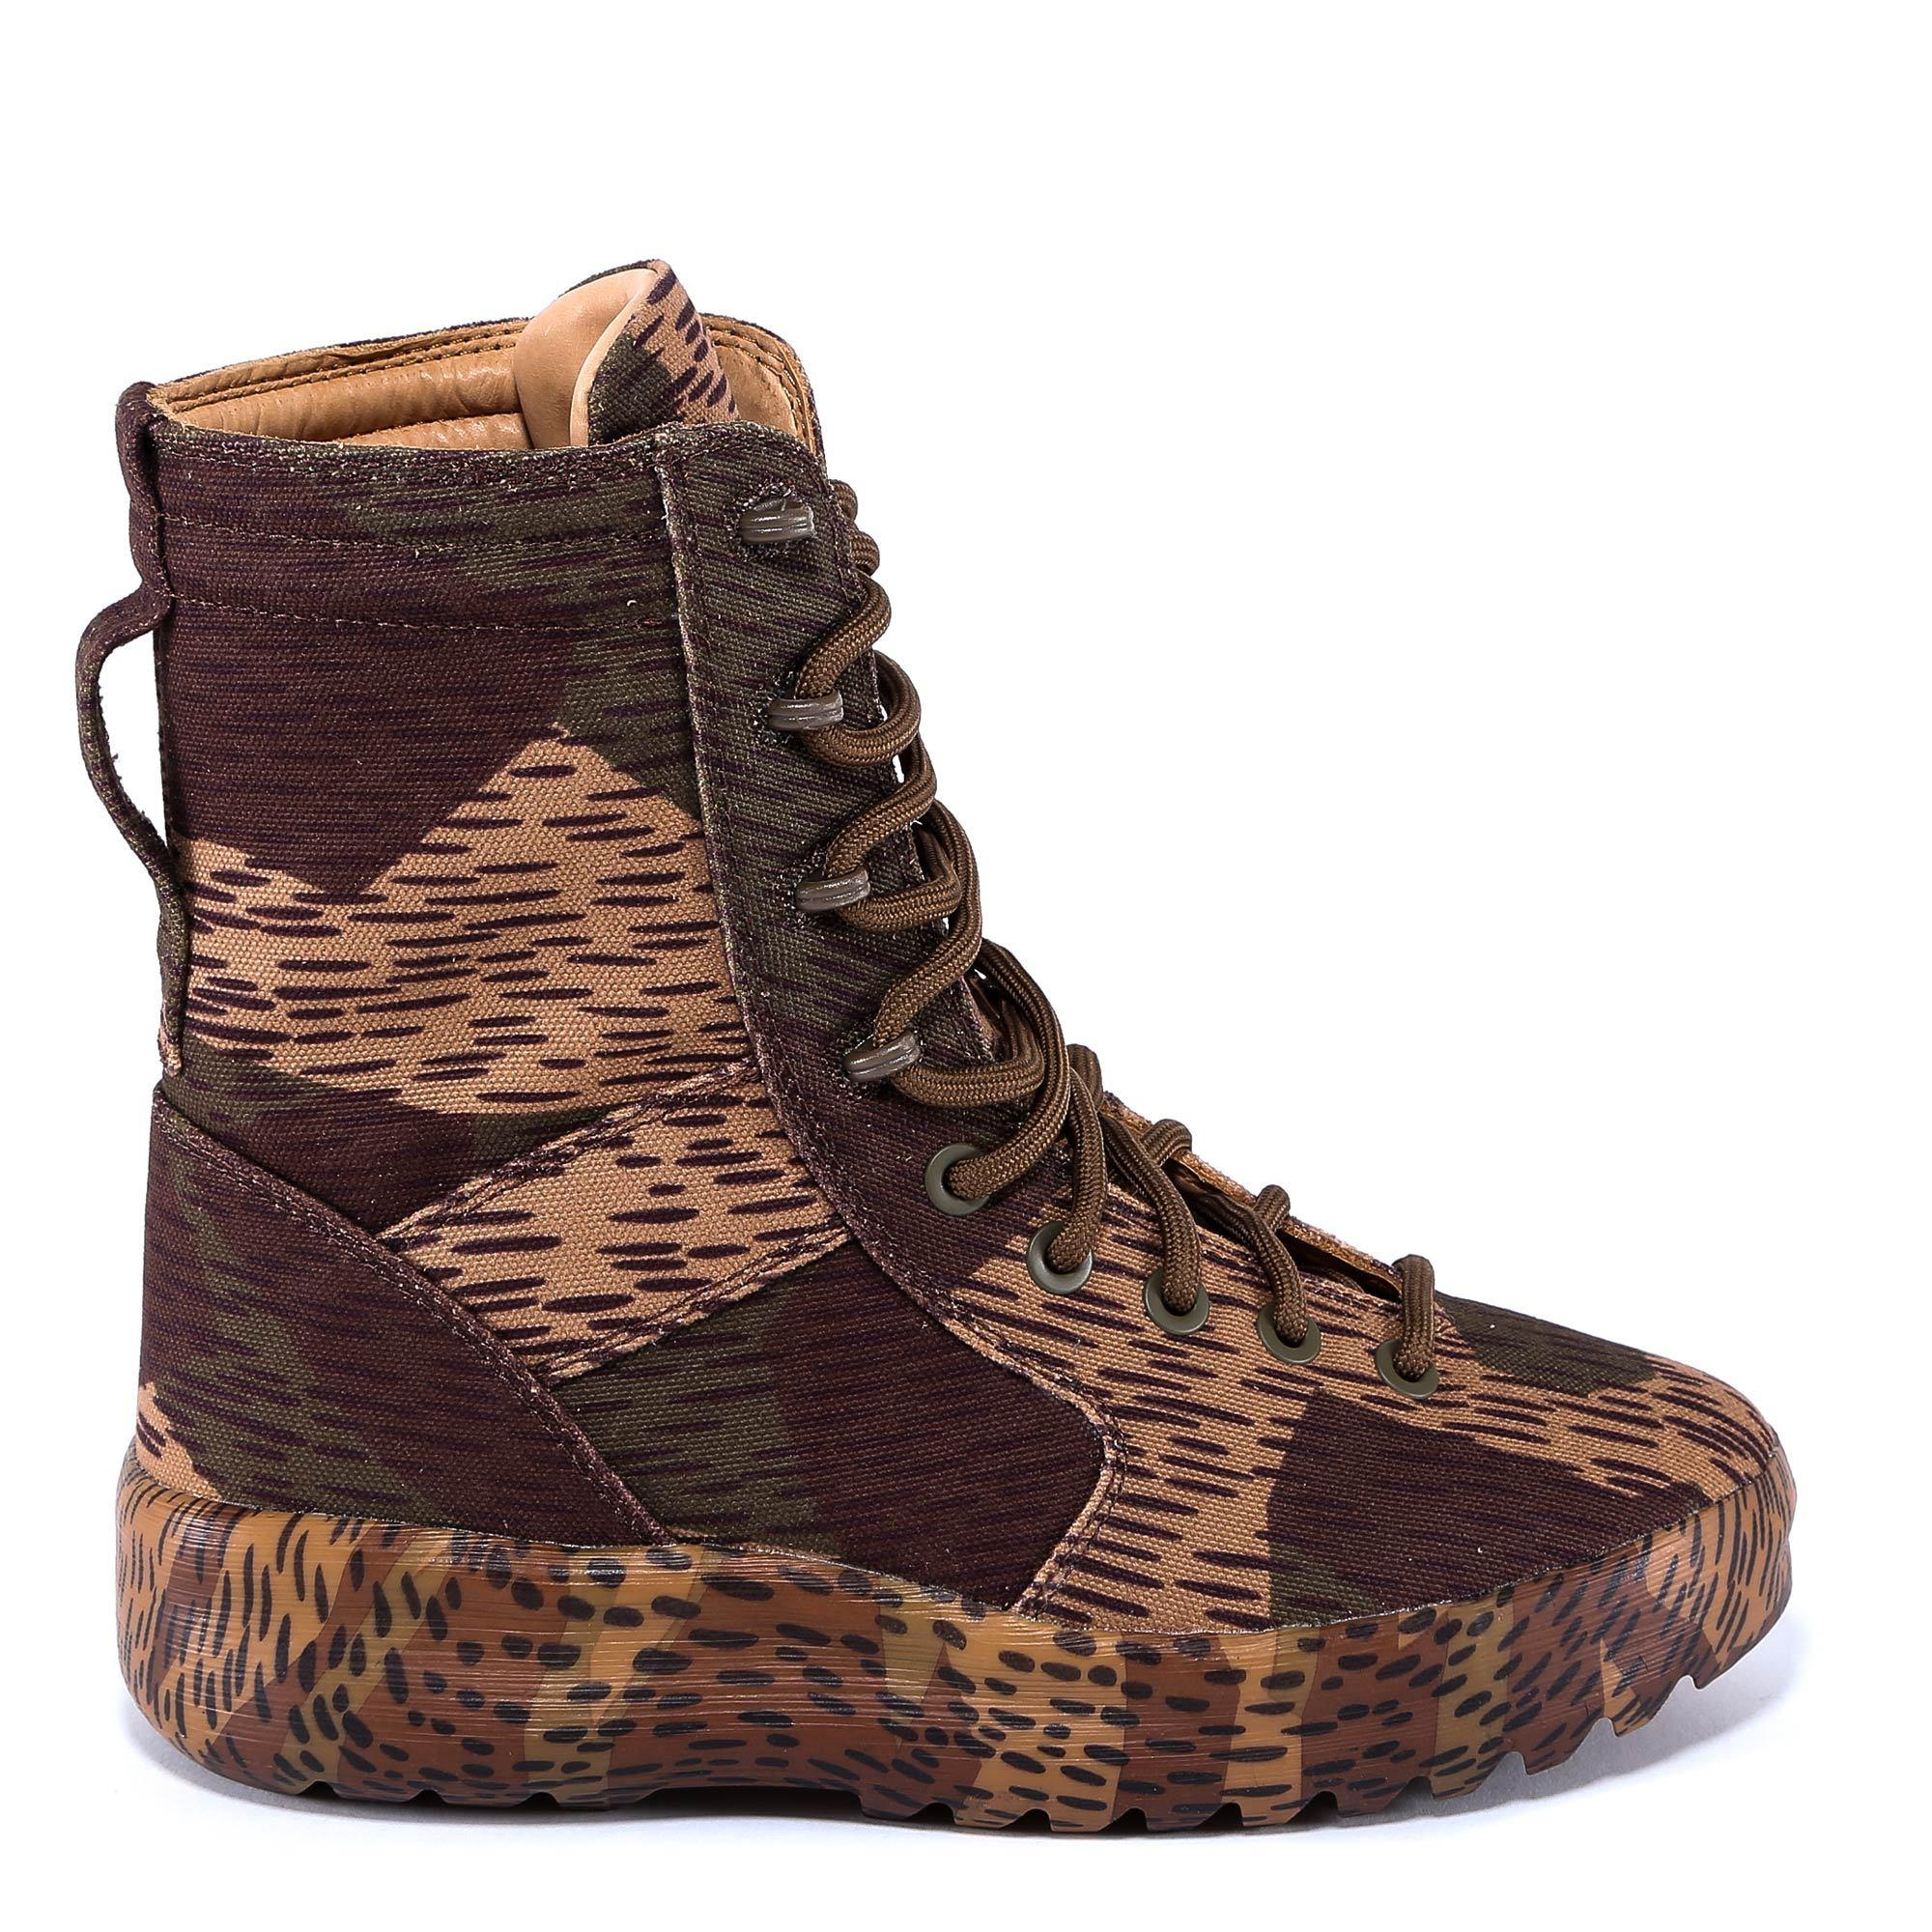 a65a1d79db7ad Yeezy Splinter Camo Washed Canvas Military Boots In Camo In Green ...